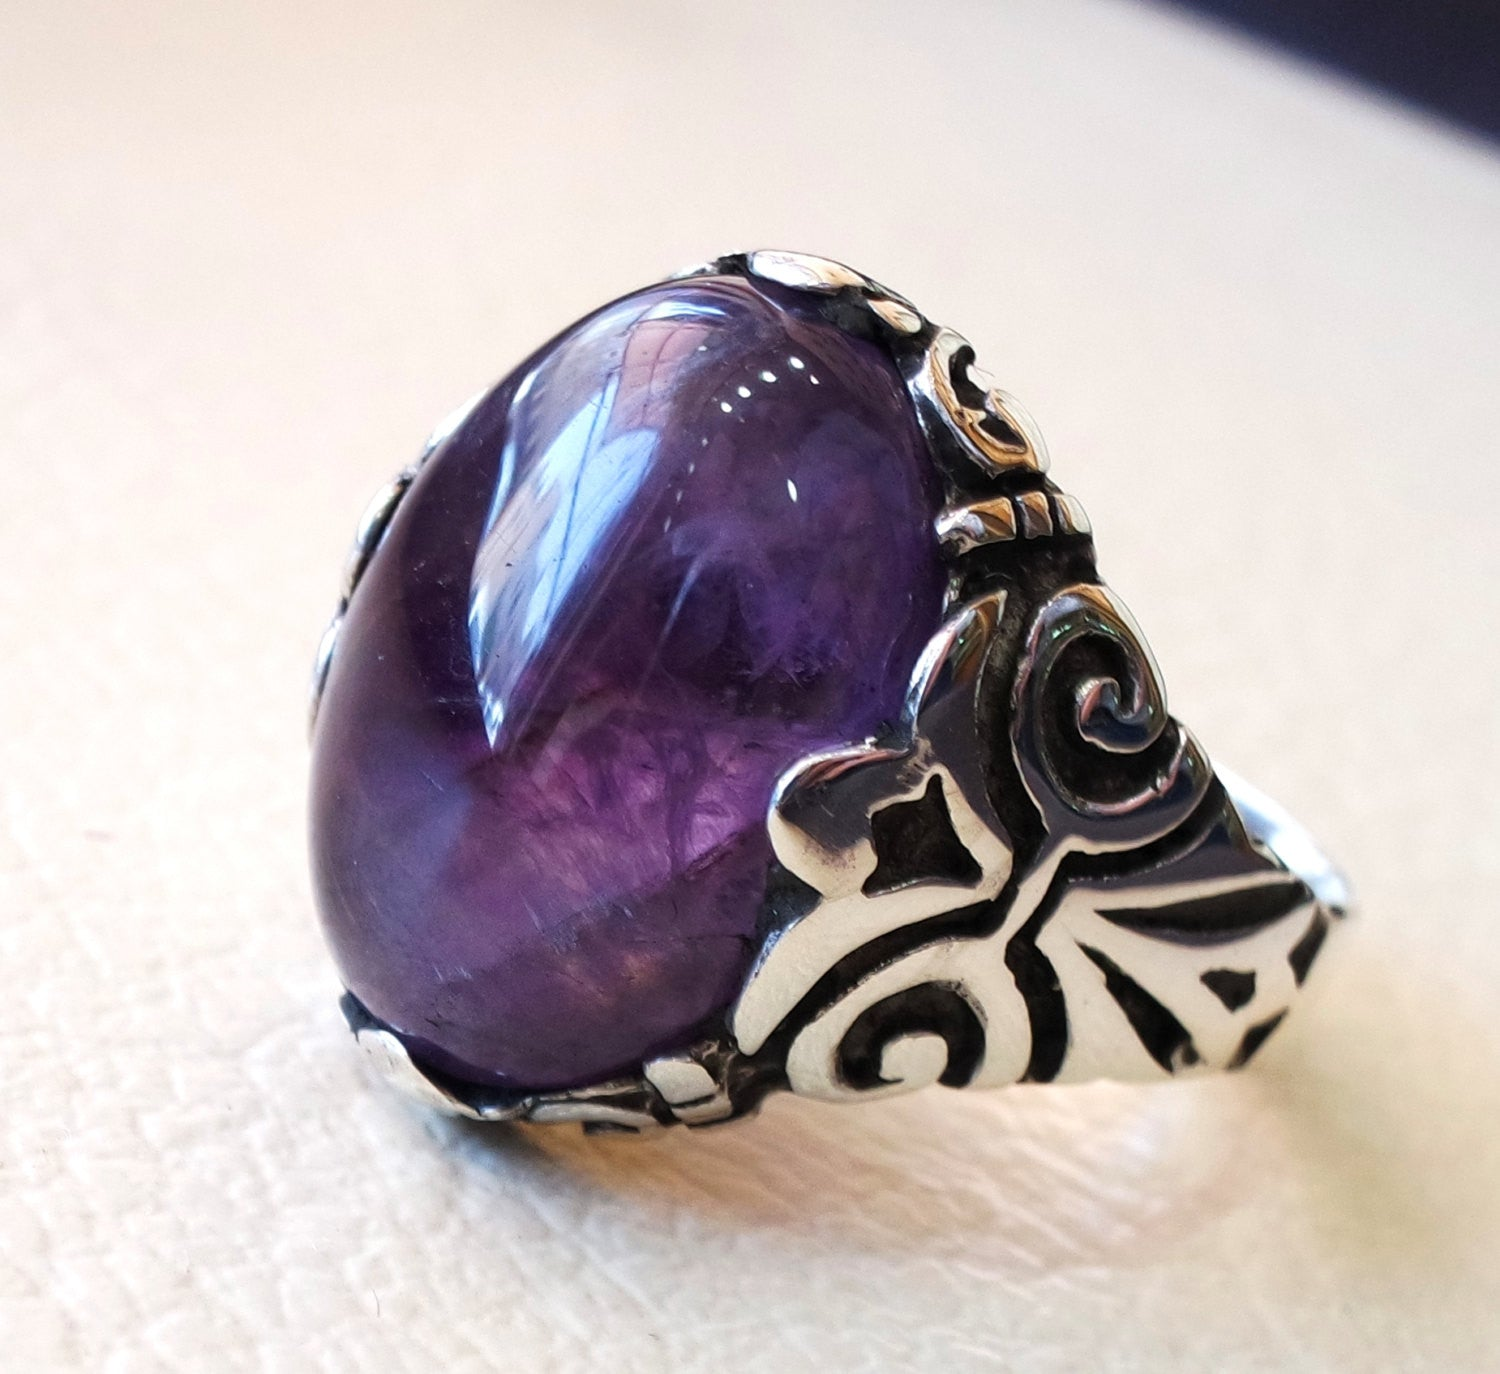 amethyst agate natural cabochon sterling silver 925 men ring vintage arabic turkish ottoman antique style jewelry oval purple gem all sizes